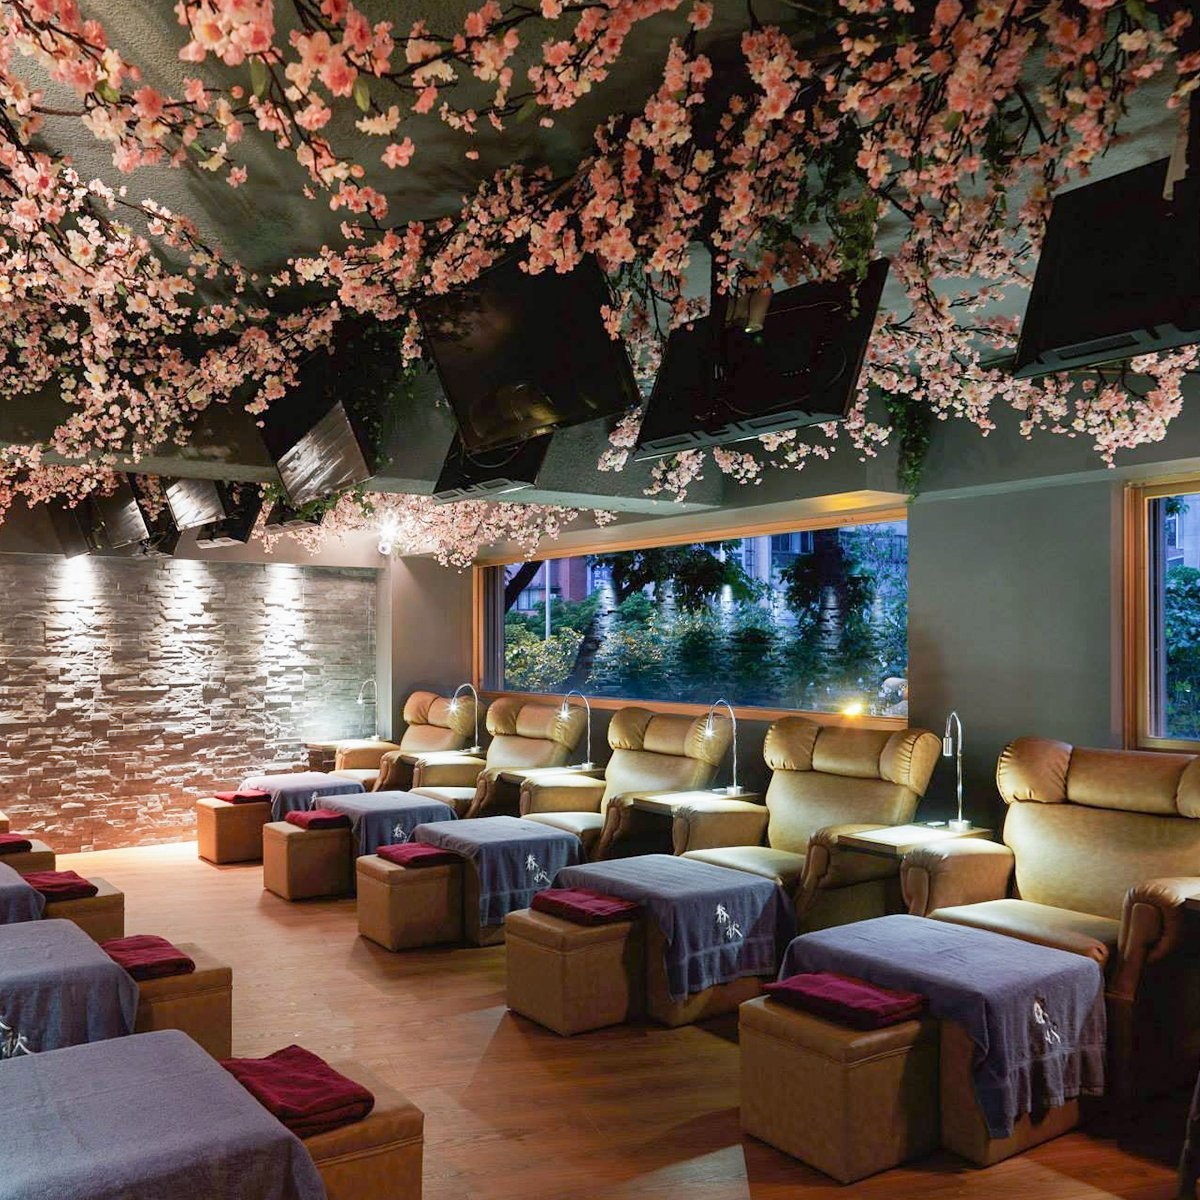 massage-chair-and-cherry-blossoms-decoration